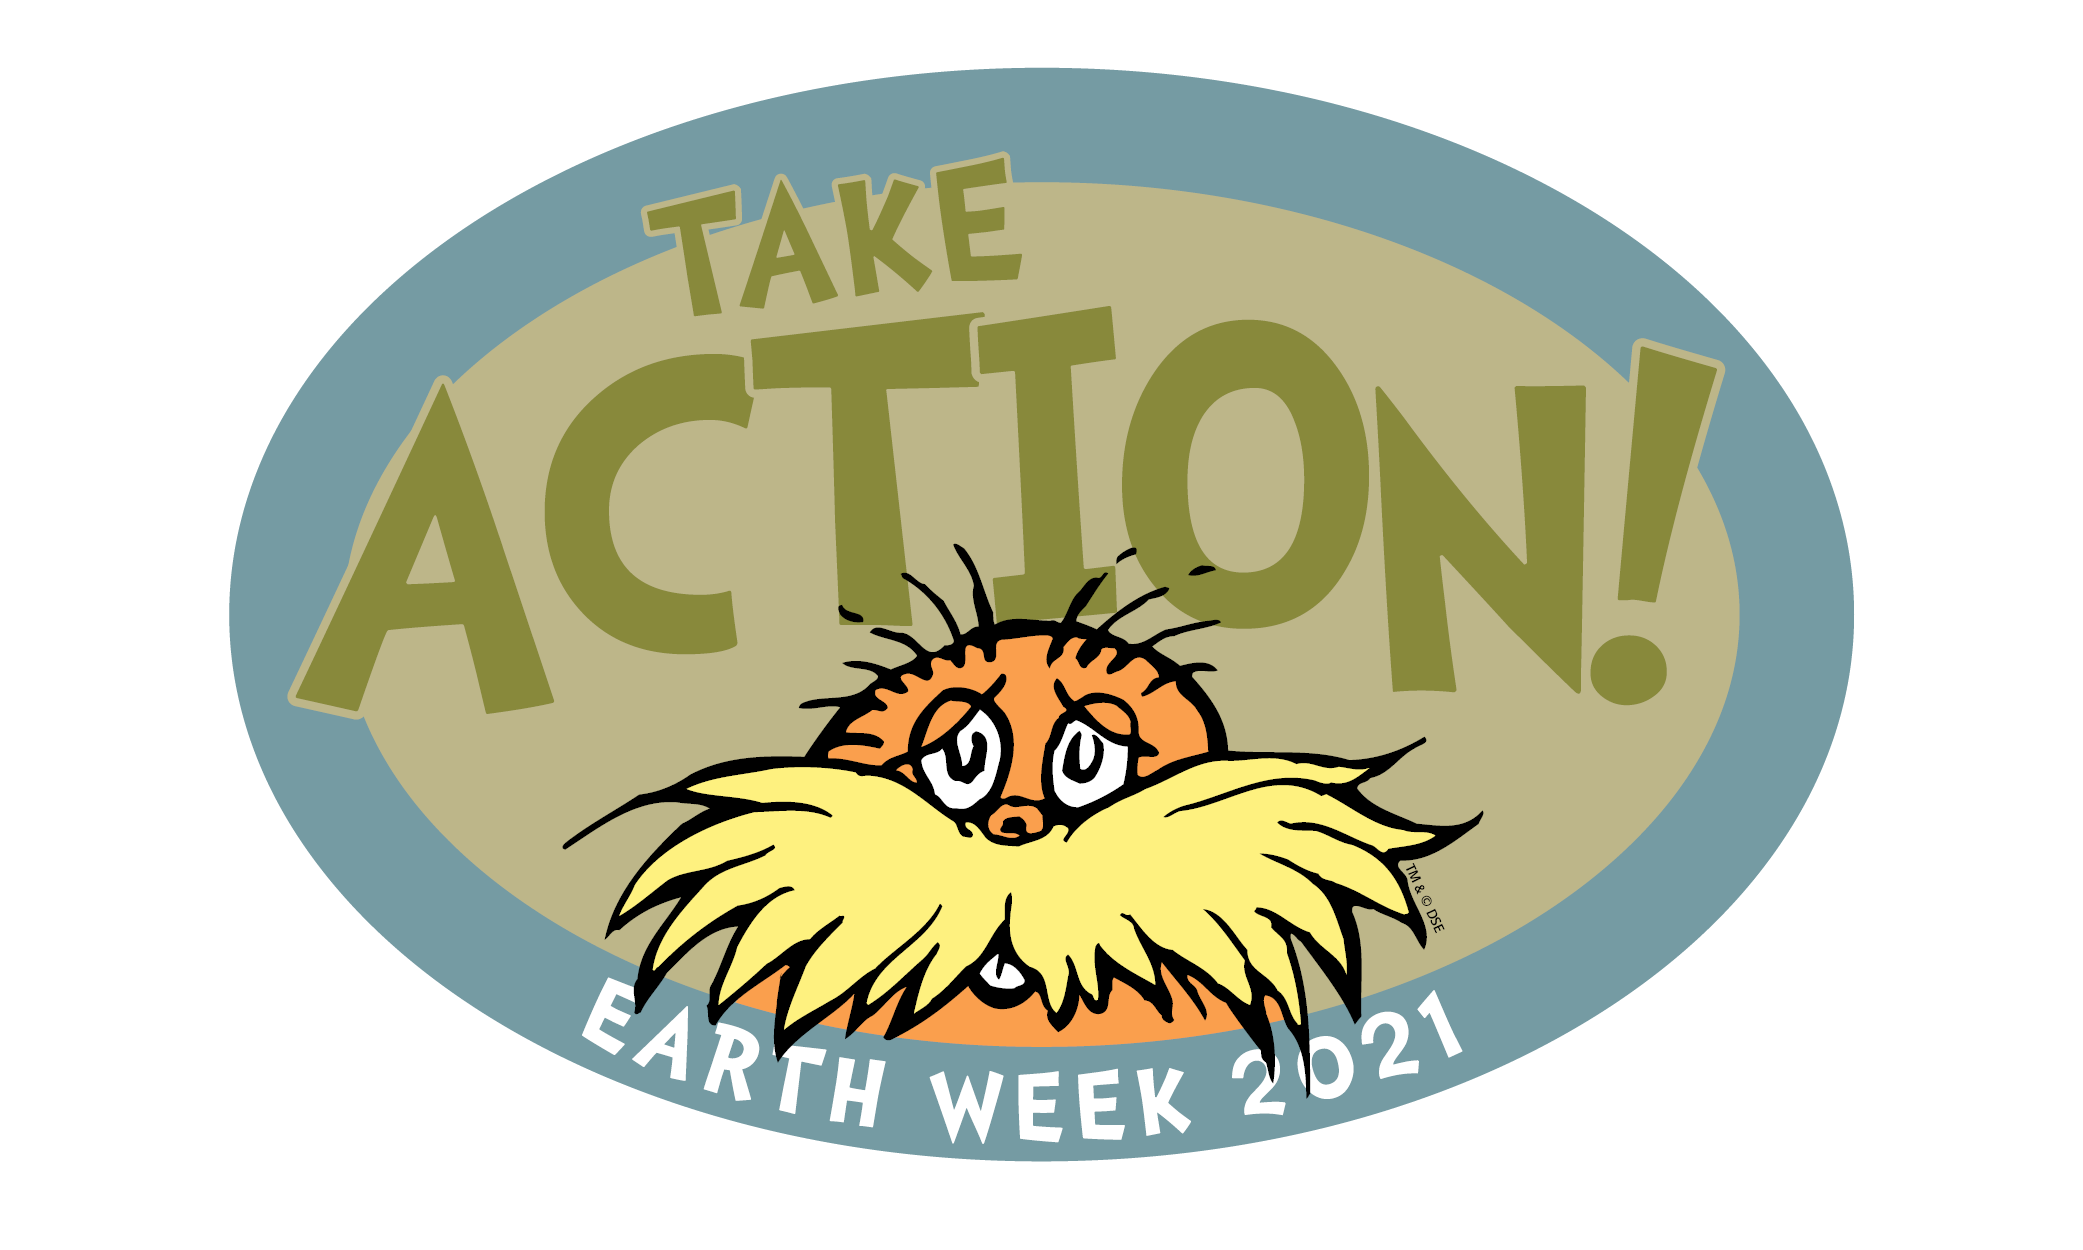 Take Action! Earth Week 2021